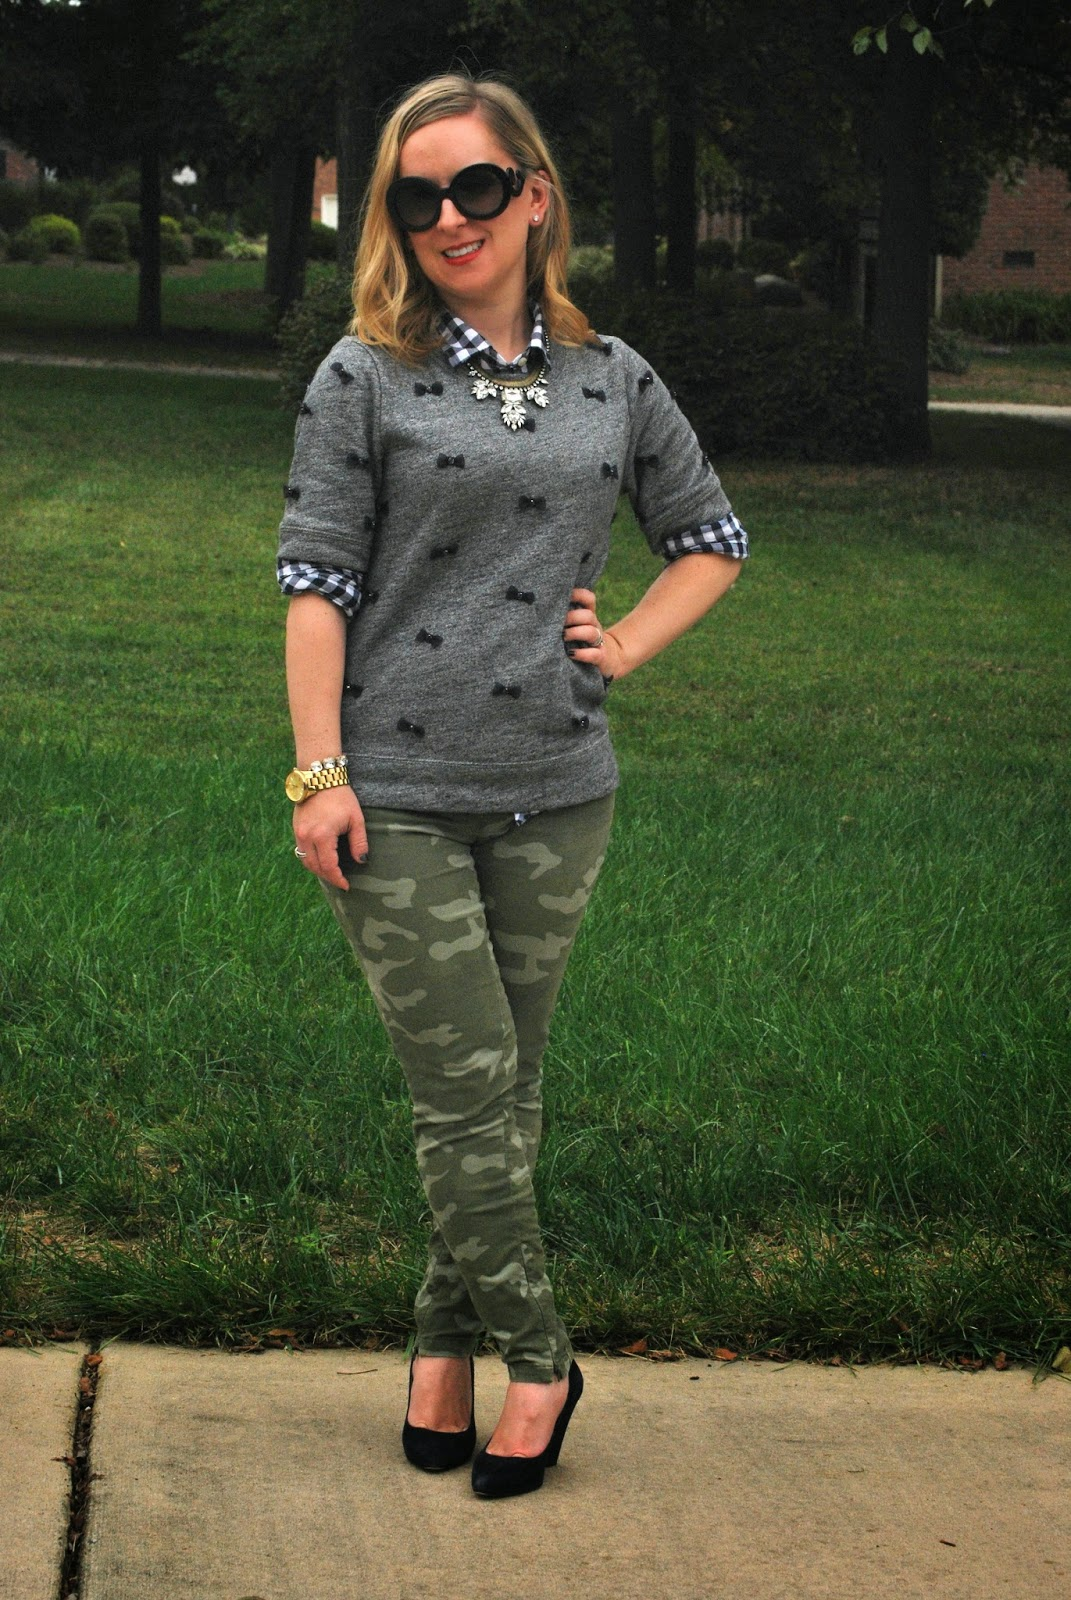 Gap, Camo print, JCrew, bow shirt, loren hope